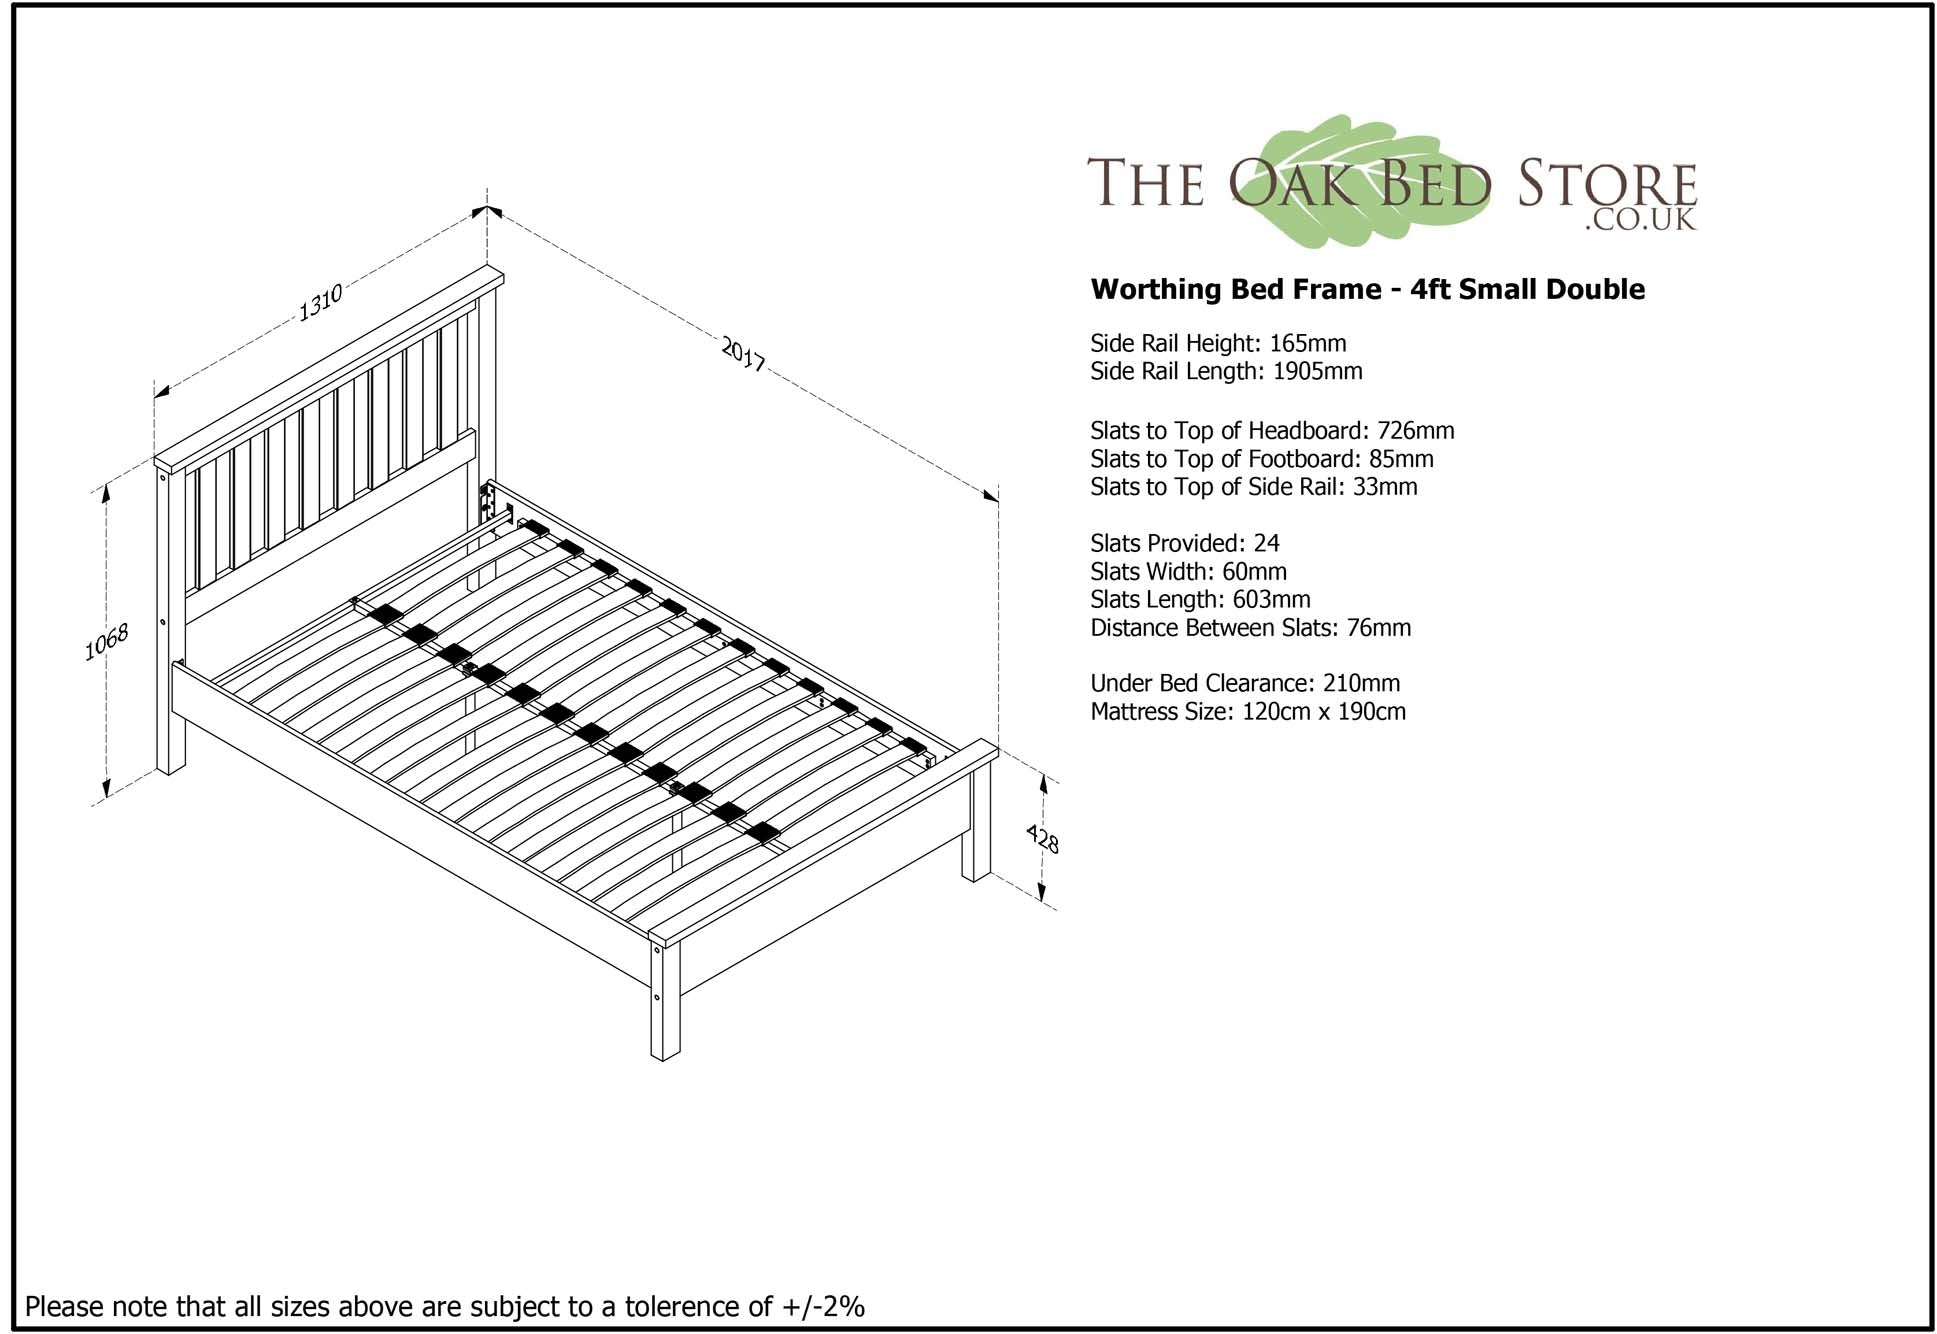 ea5041dc8db9 Worthing White Wooden Bed Frame - 4ft Small Double – The Oak Bed Store